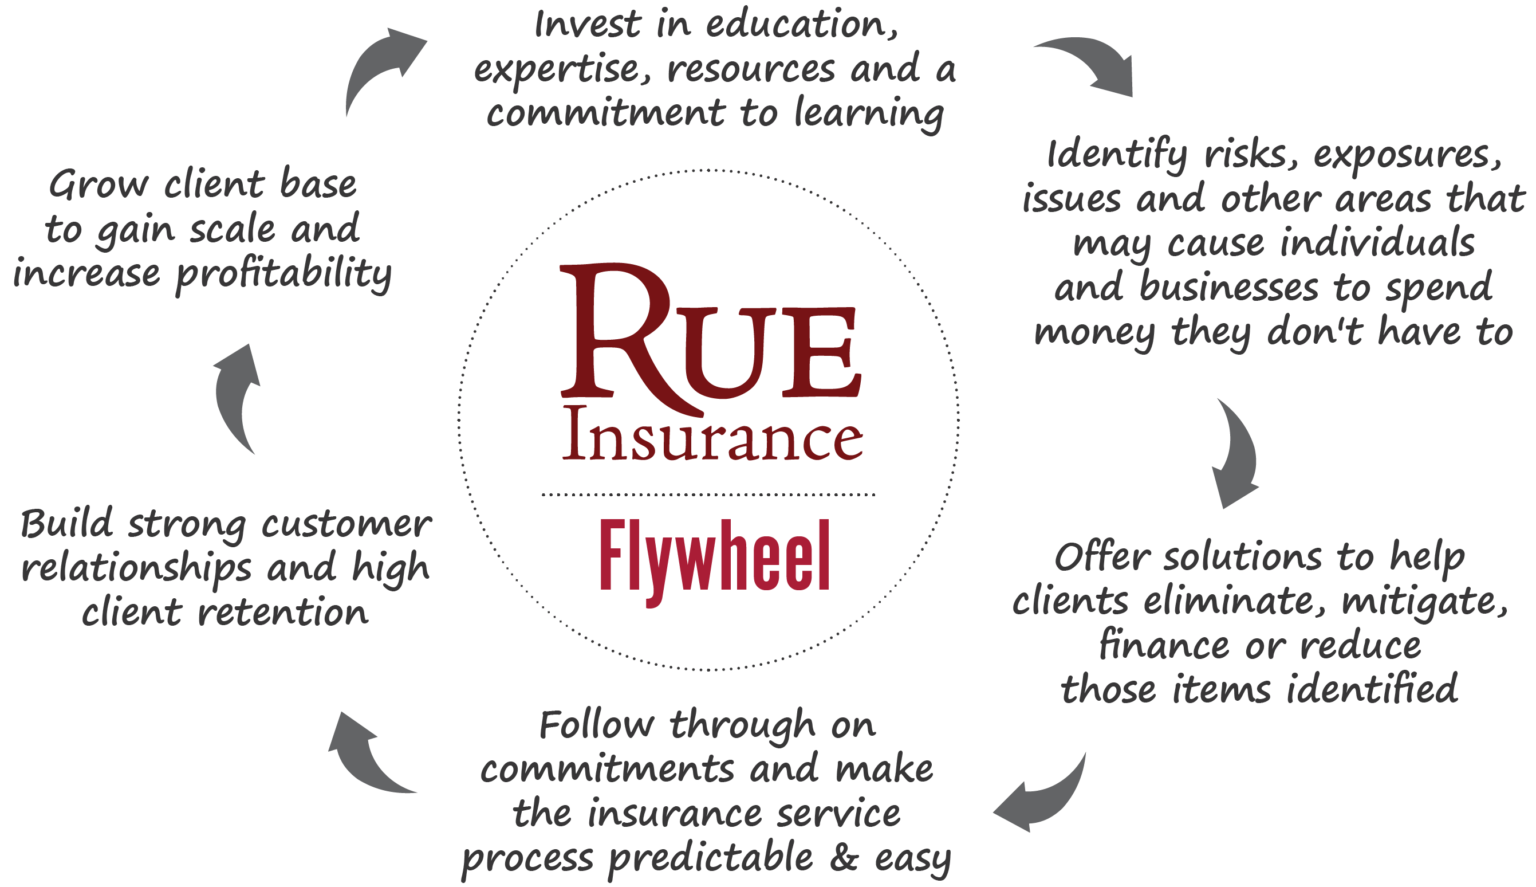 Rue-Flywheel